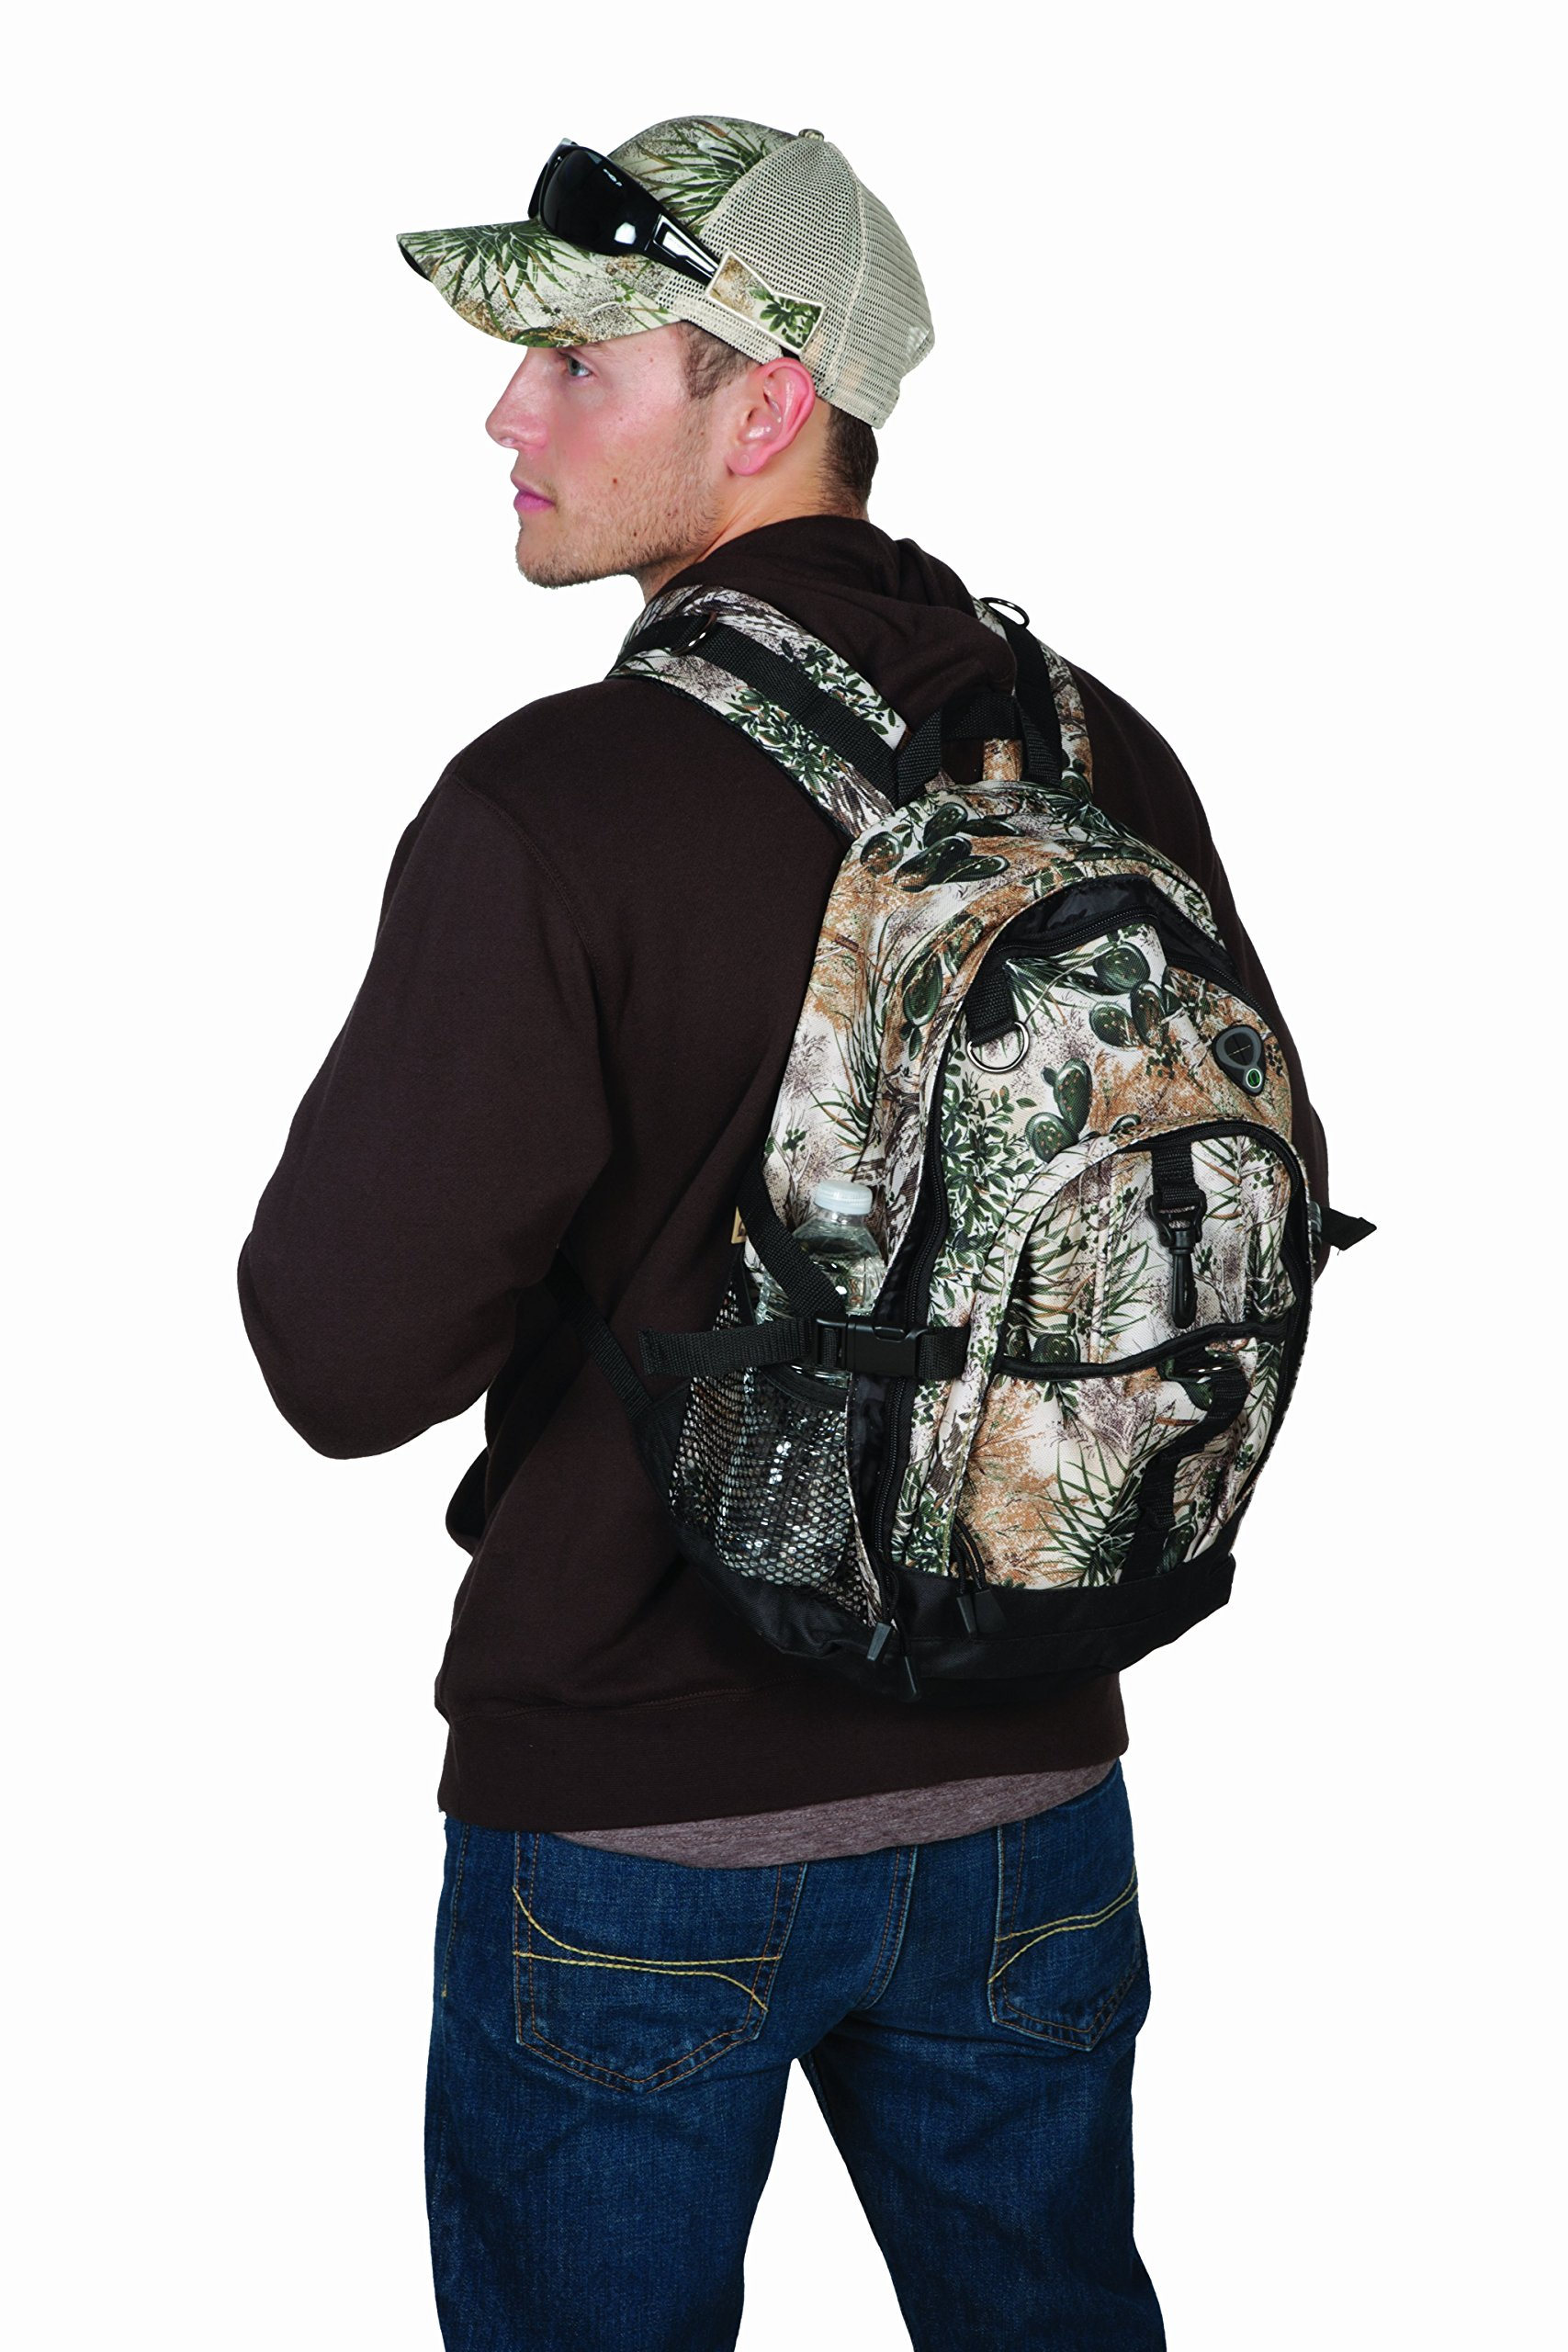 KC Caps Unisex Outdoor Sports Backpack GameGuard Day Hunting Back Pack Camping Bag by KC Caps (Image #2)